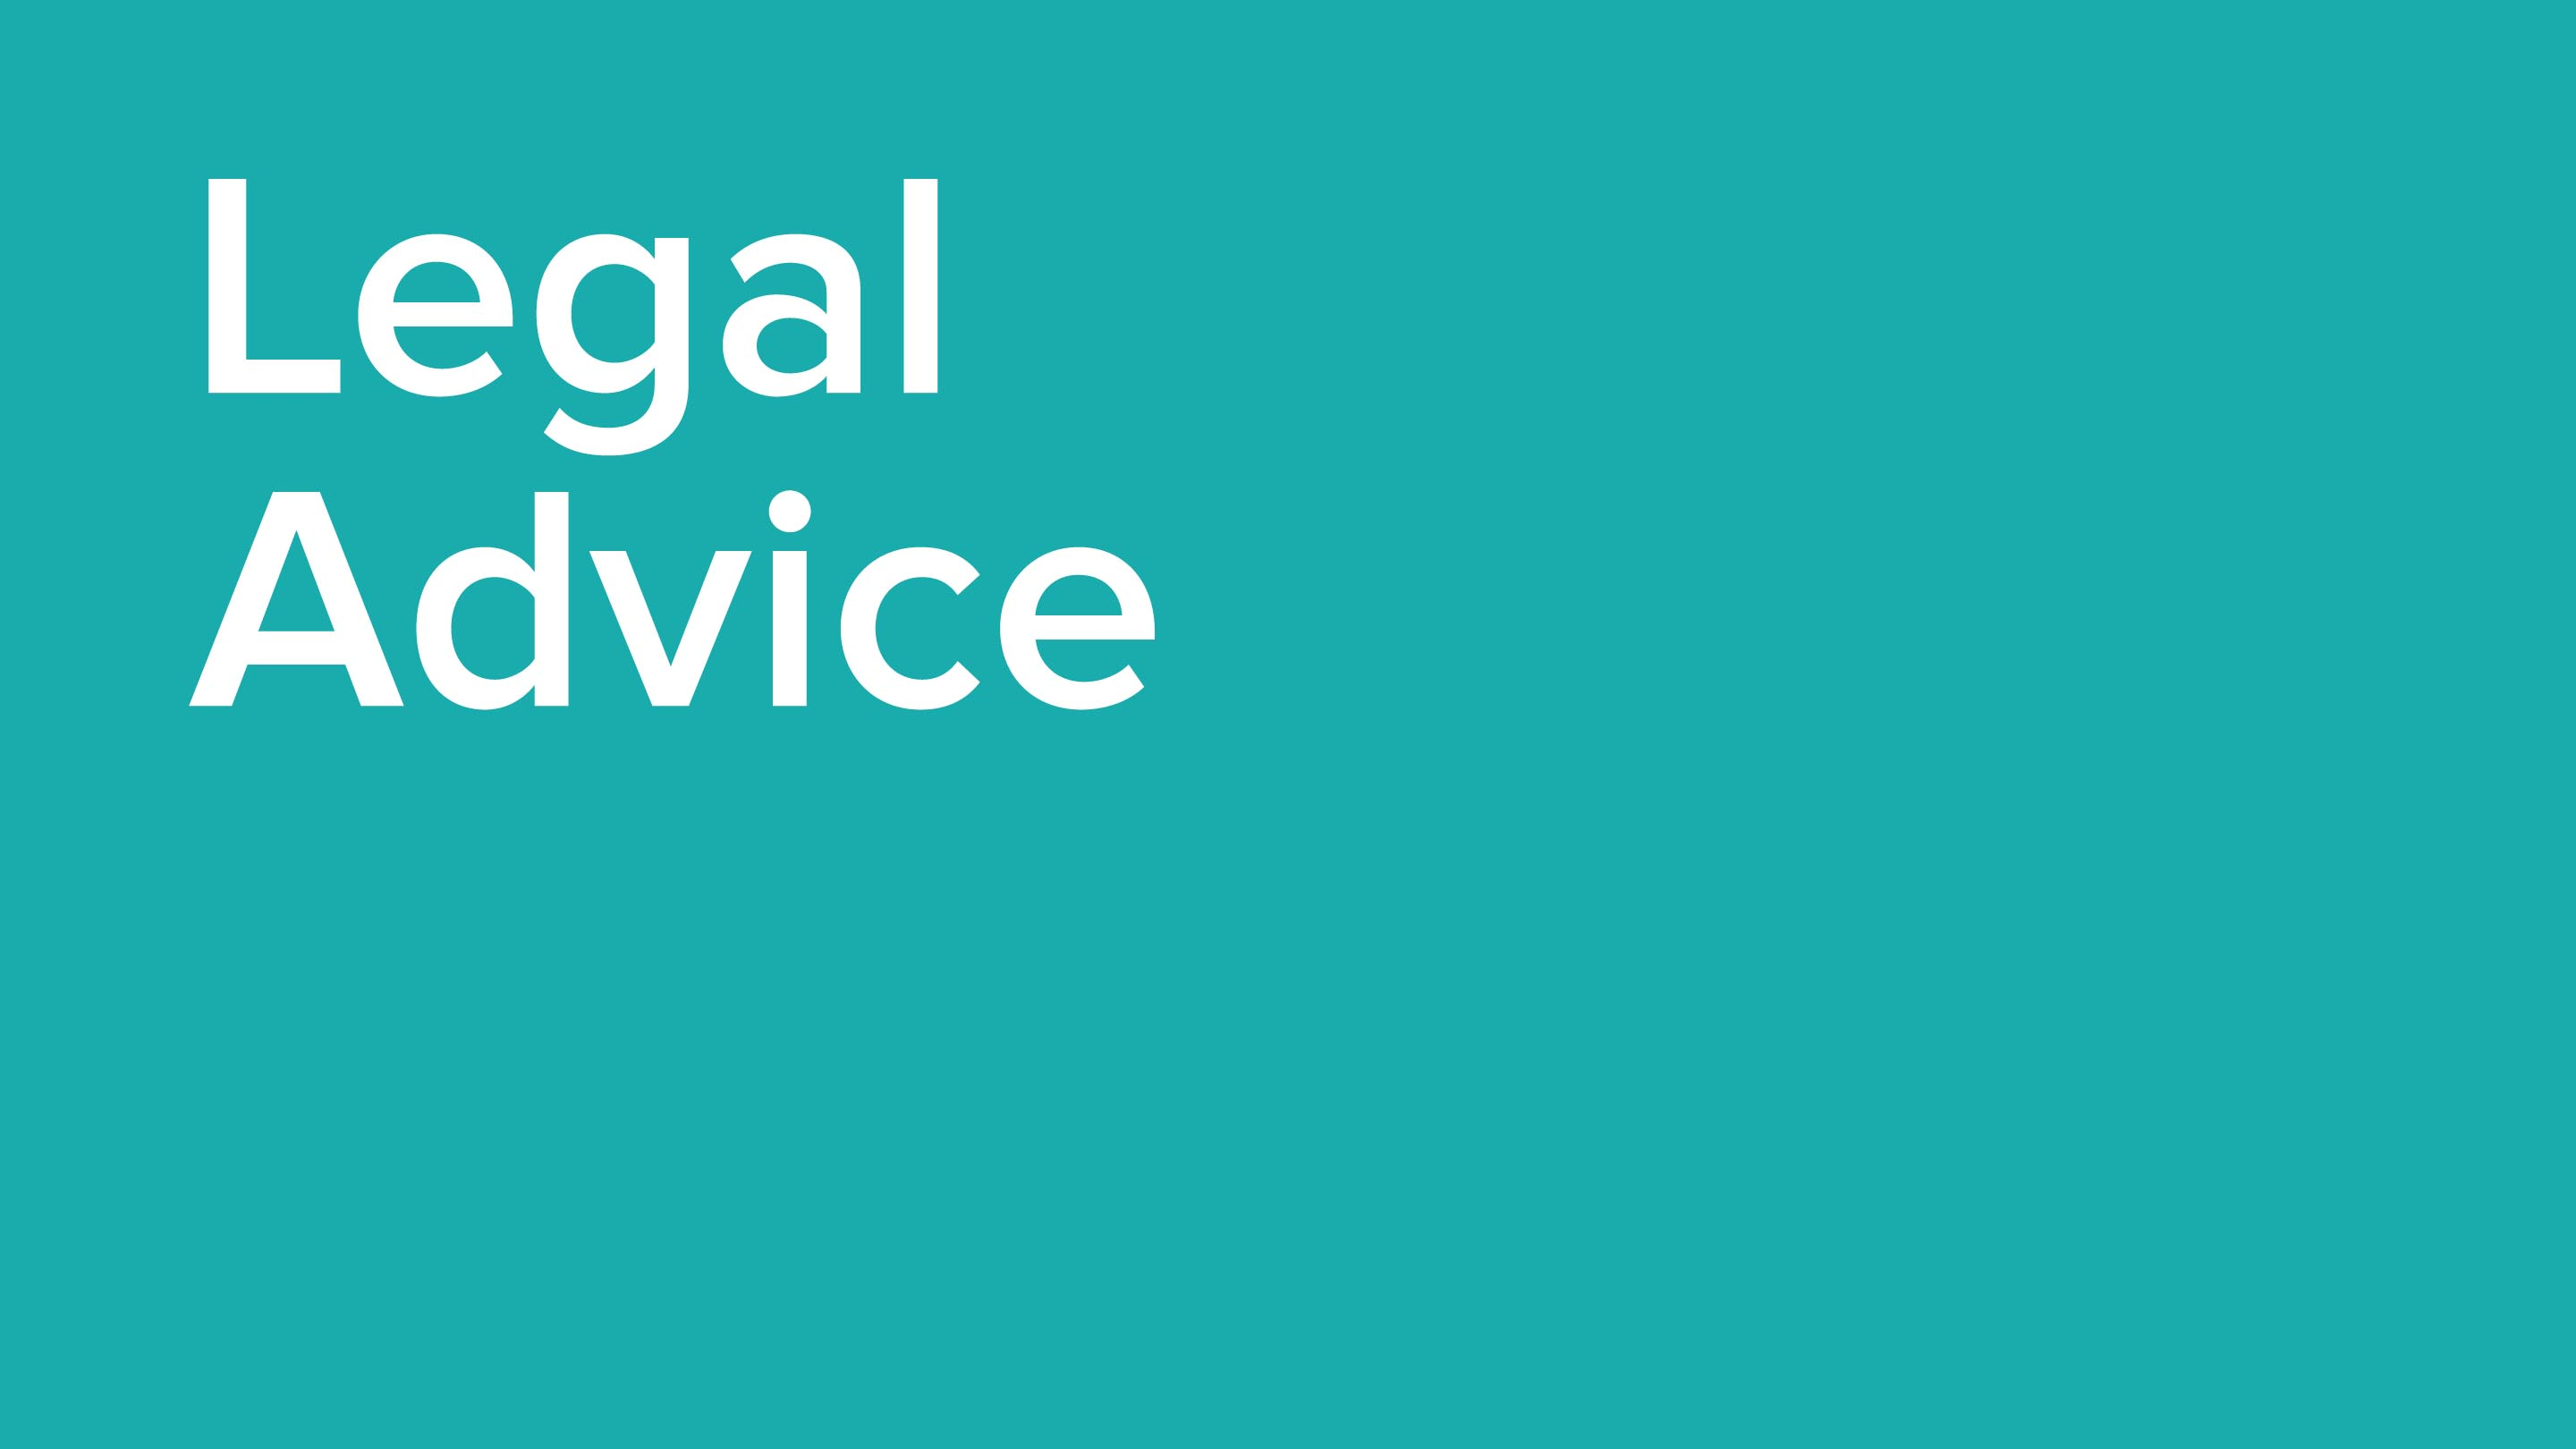 Legal advice button image